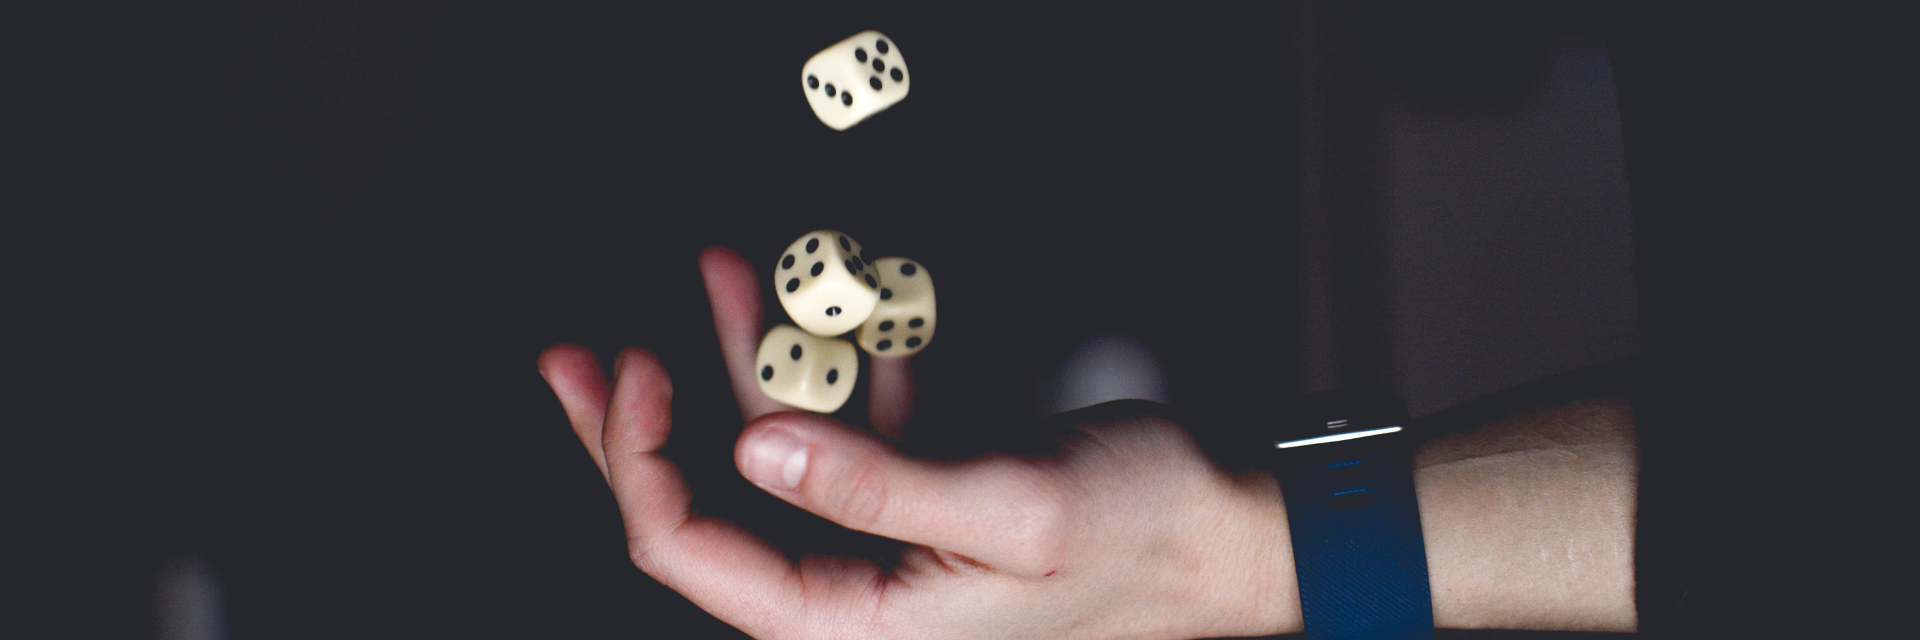 gamification e-learning